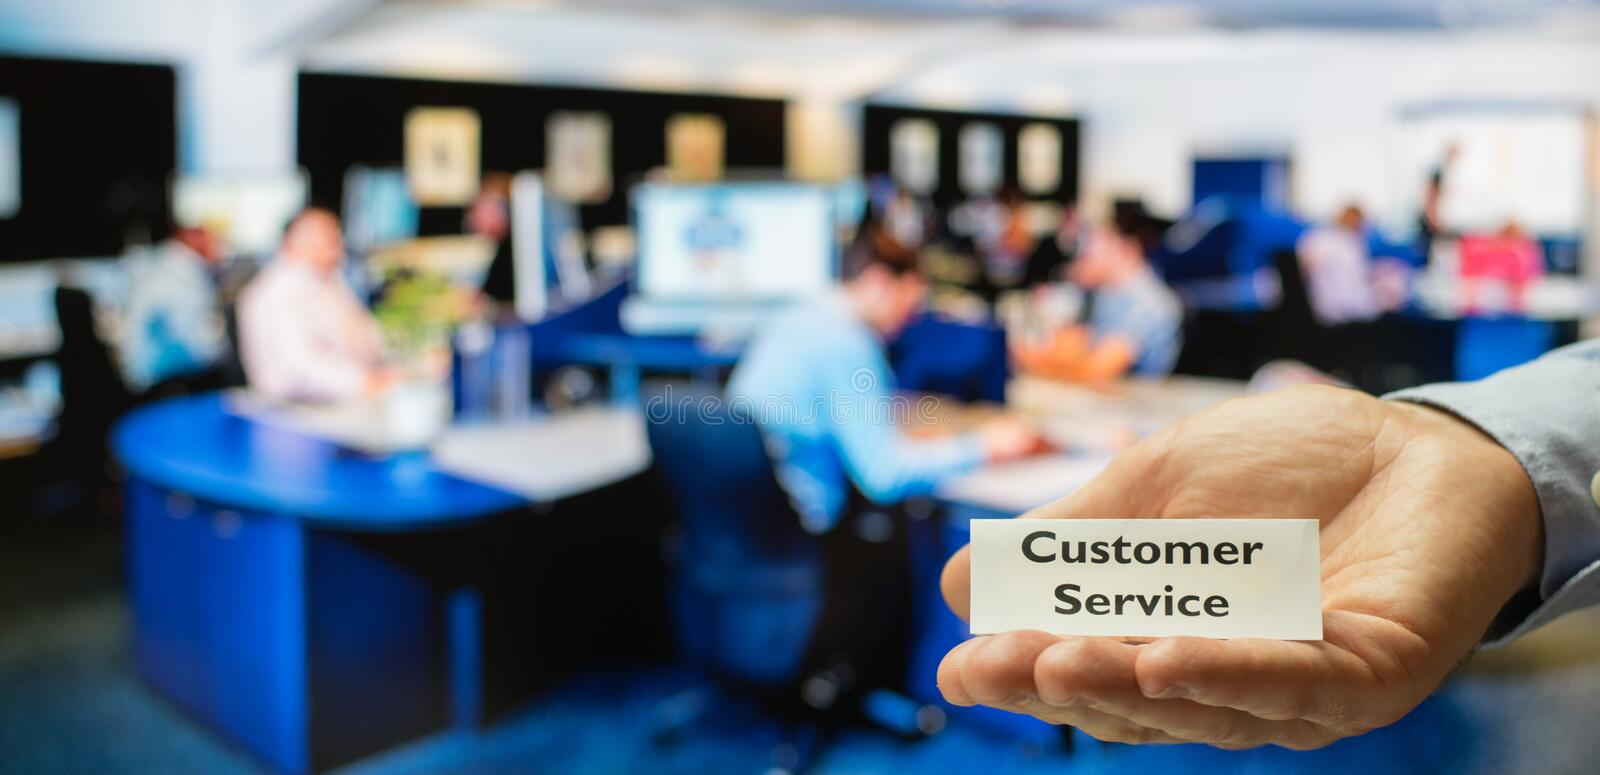 Customer service center. Ready for servicing incoming calls from customers royalty free stock photos